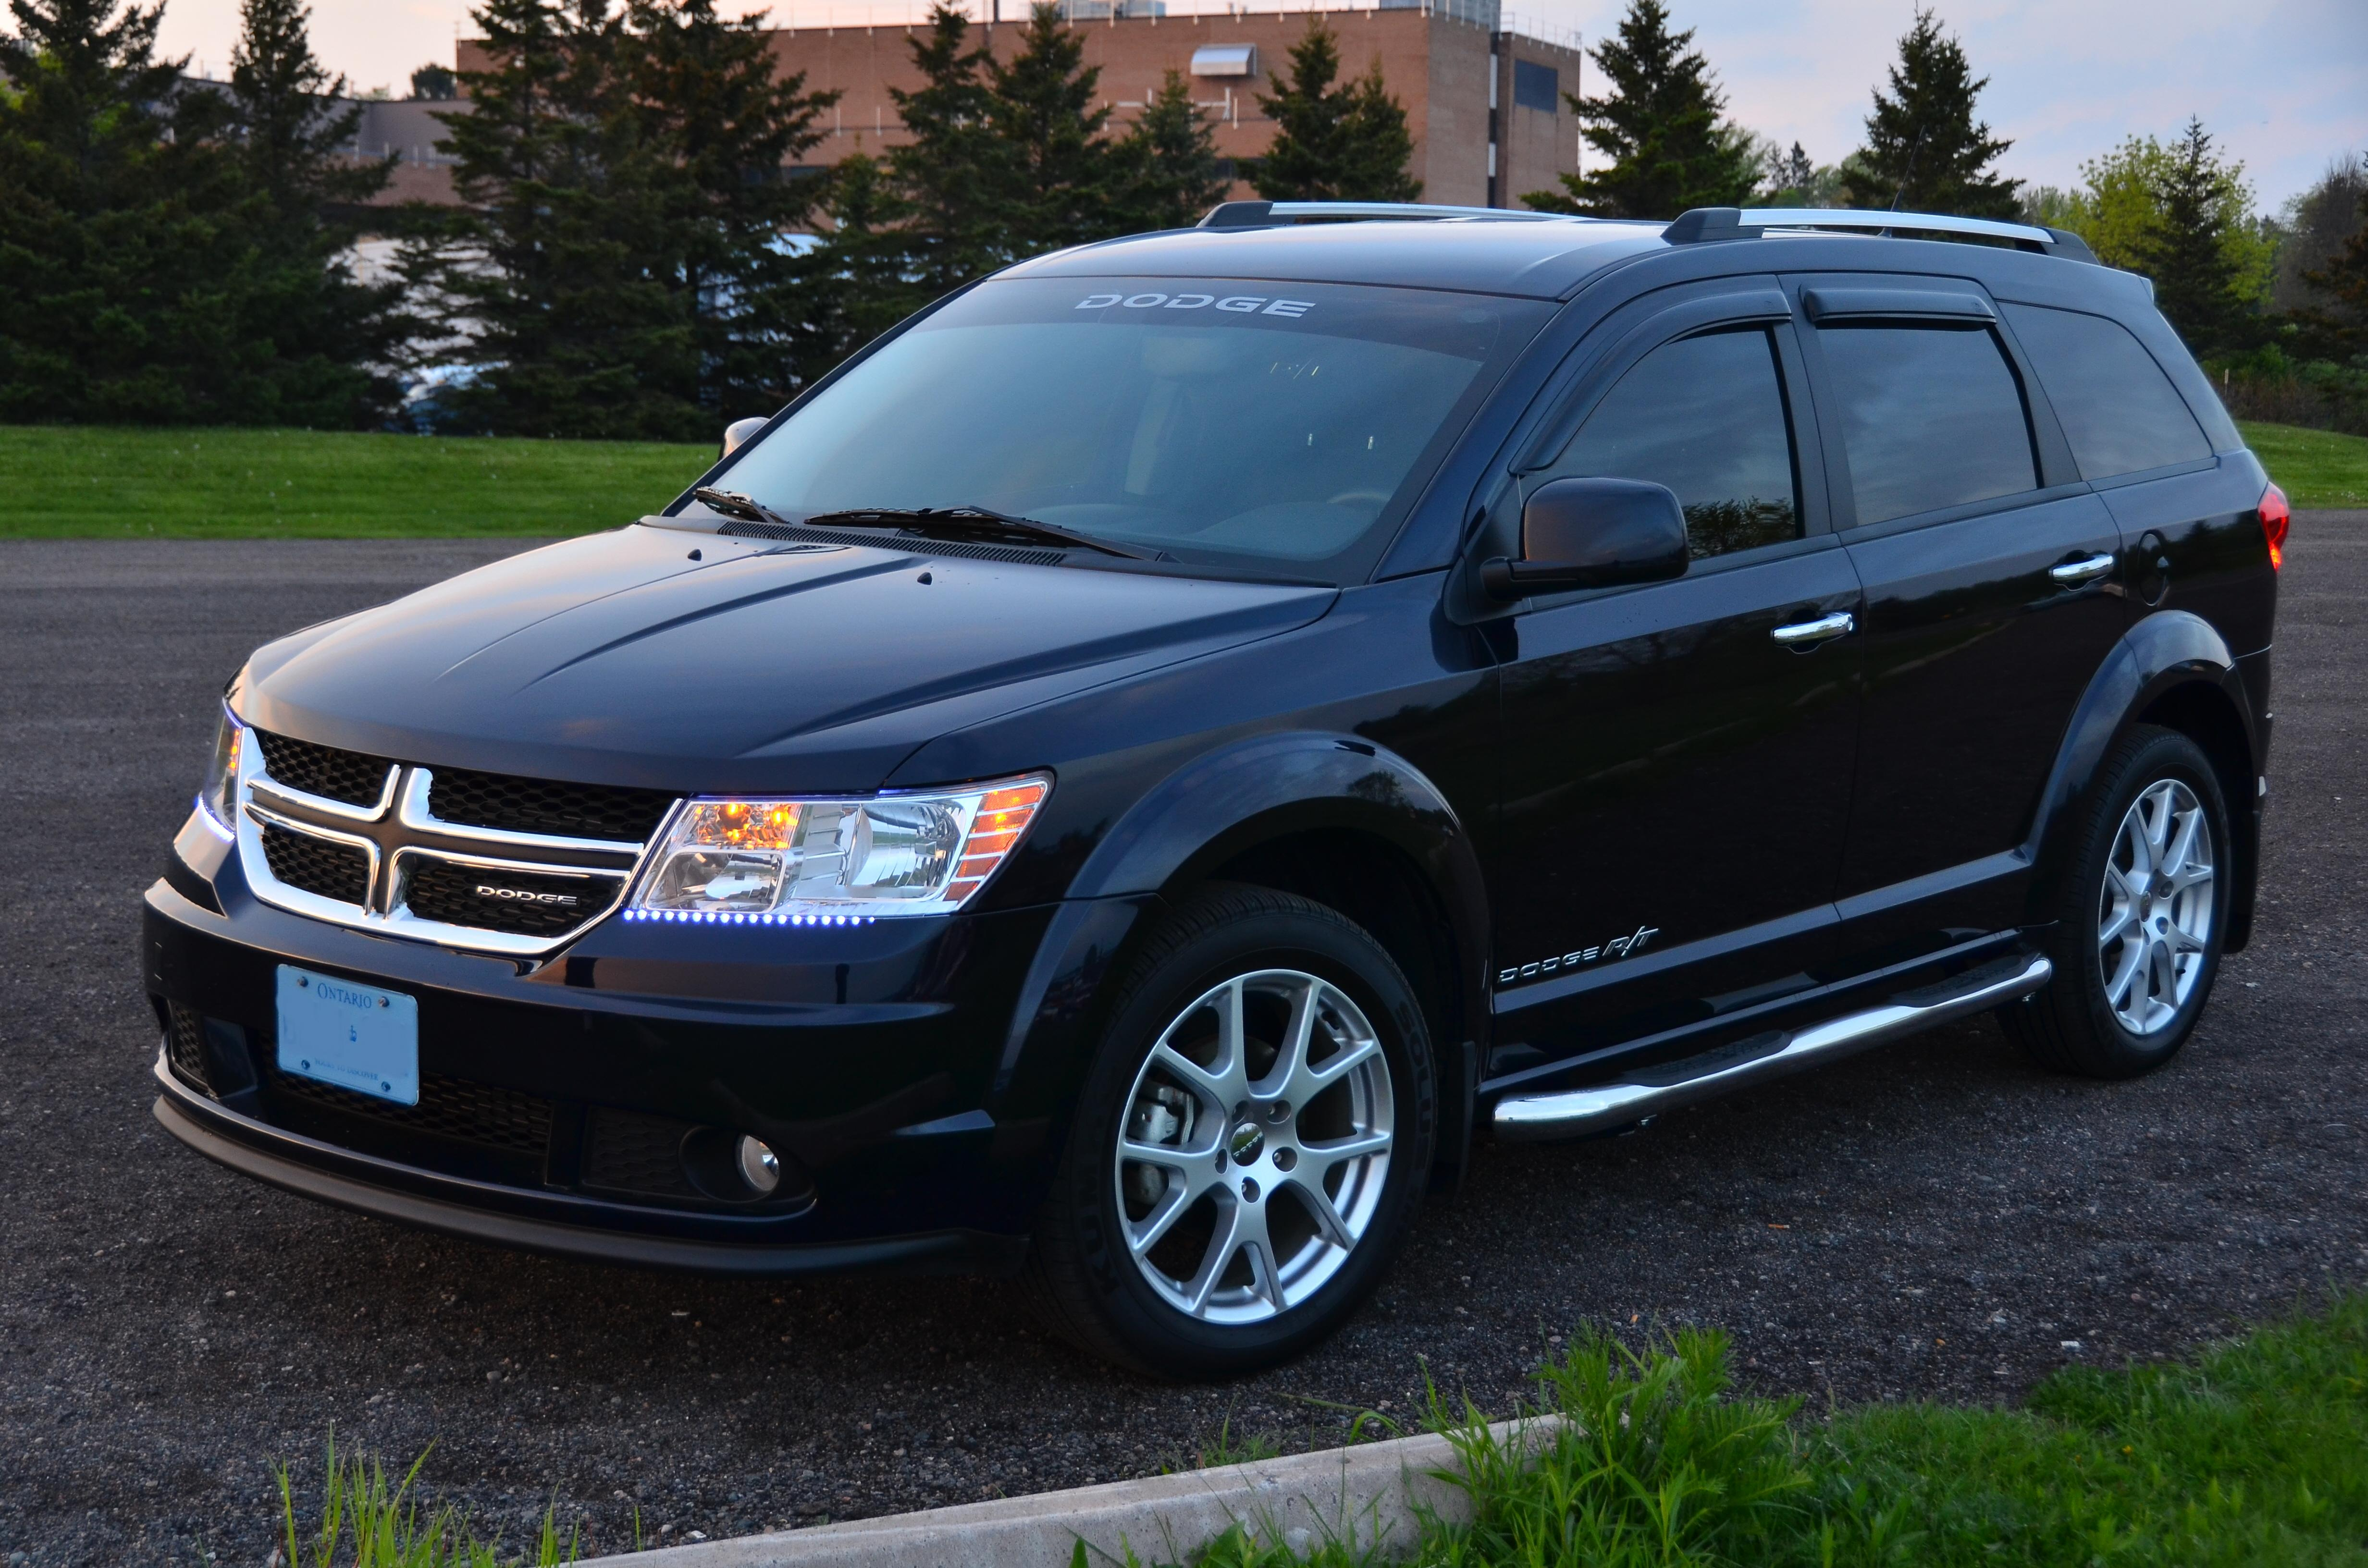 Paullie 2011 Dodge JourneyR/T Sport Utility 4D Specs, Photos, Modification Info at CarDomain